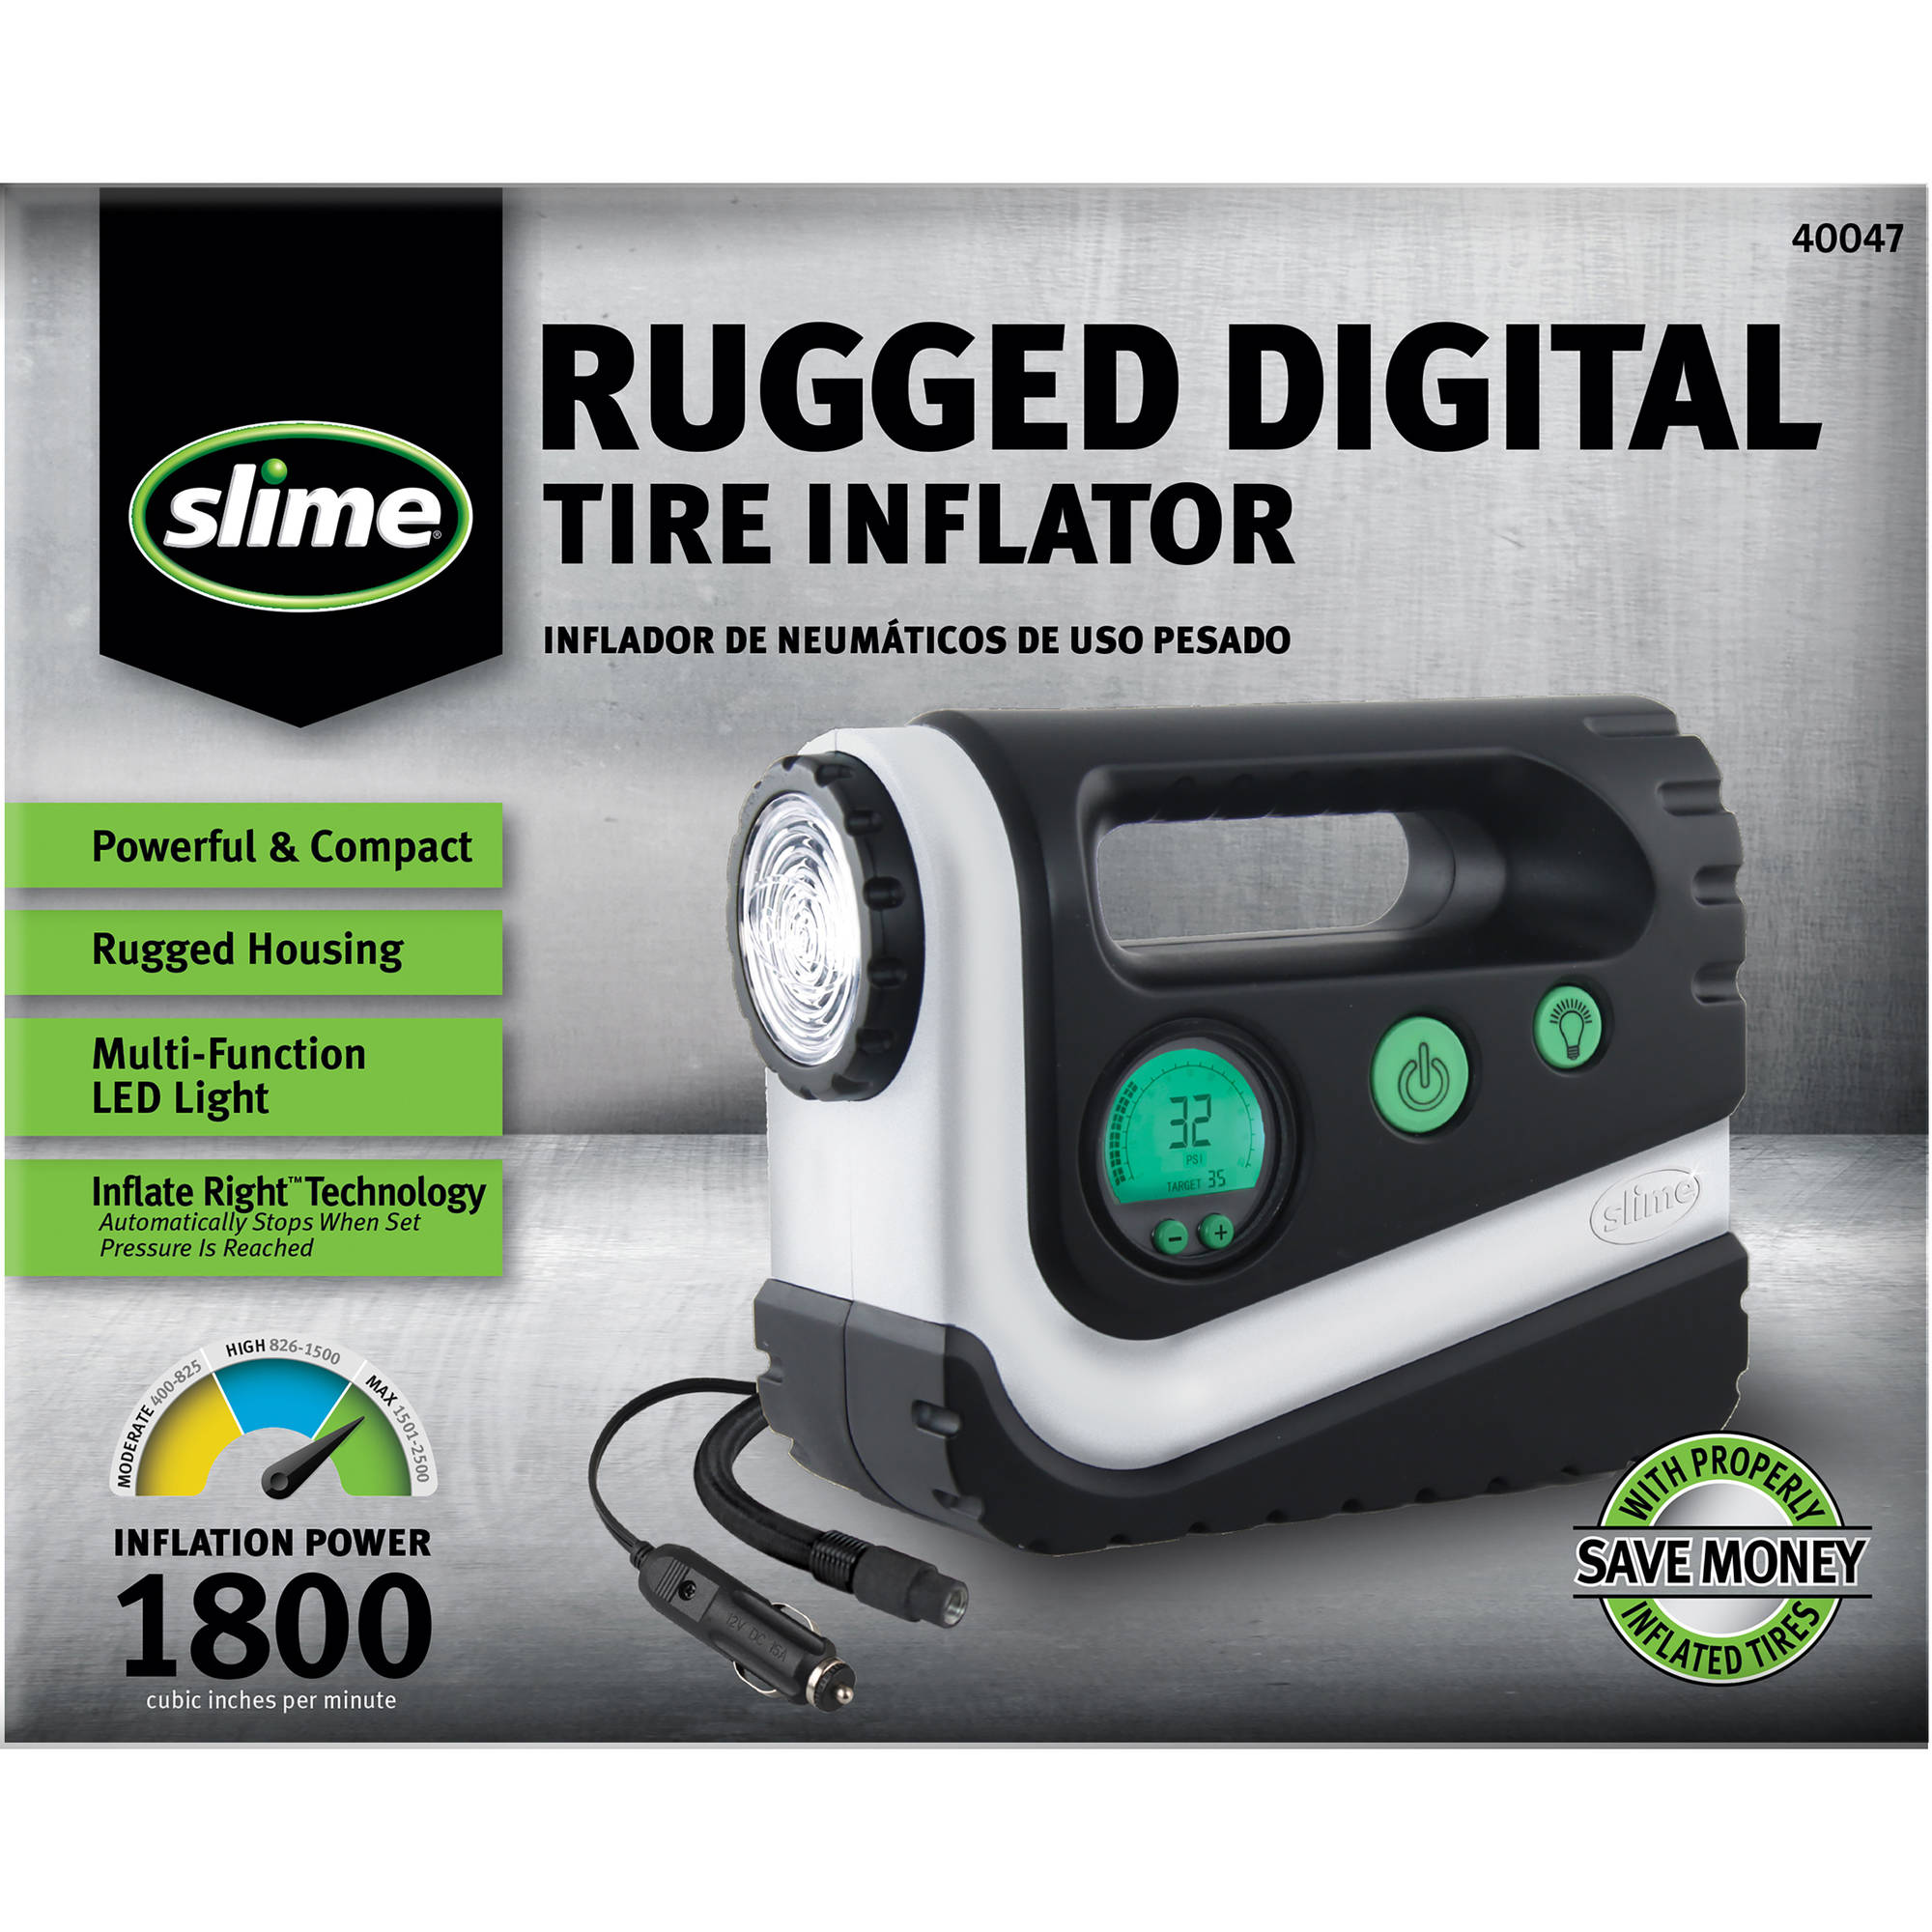 Slime Rugged Digital Tire Inflator - 40047